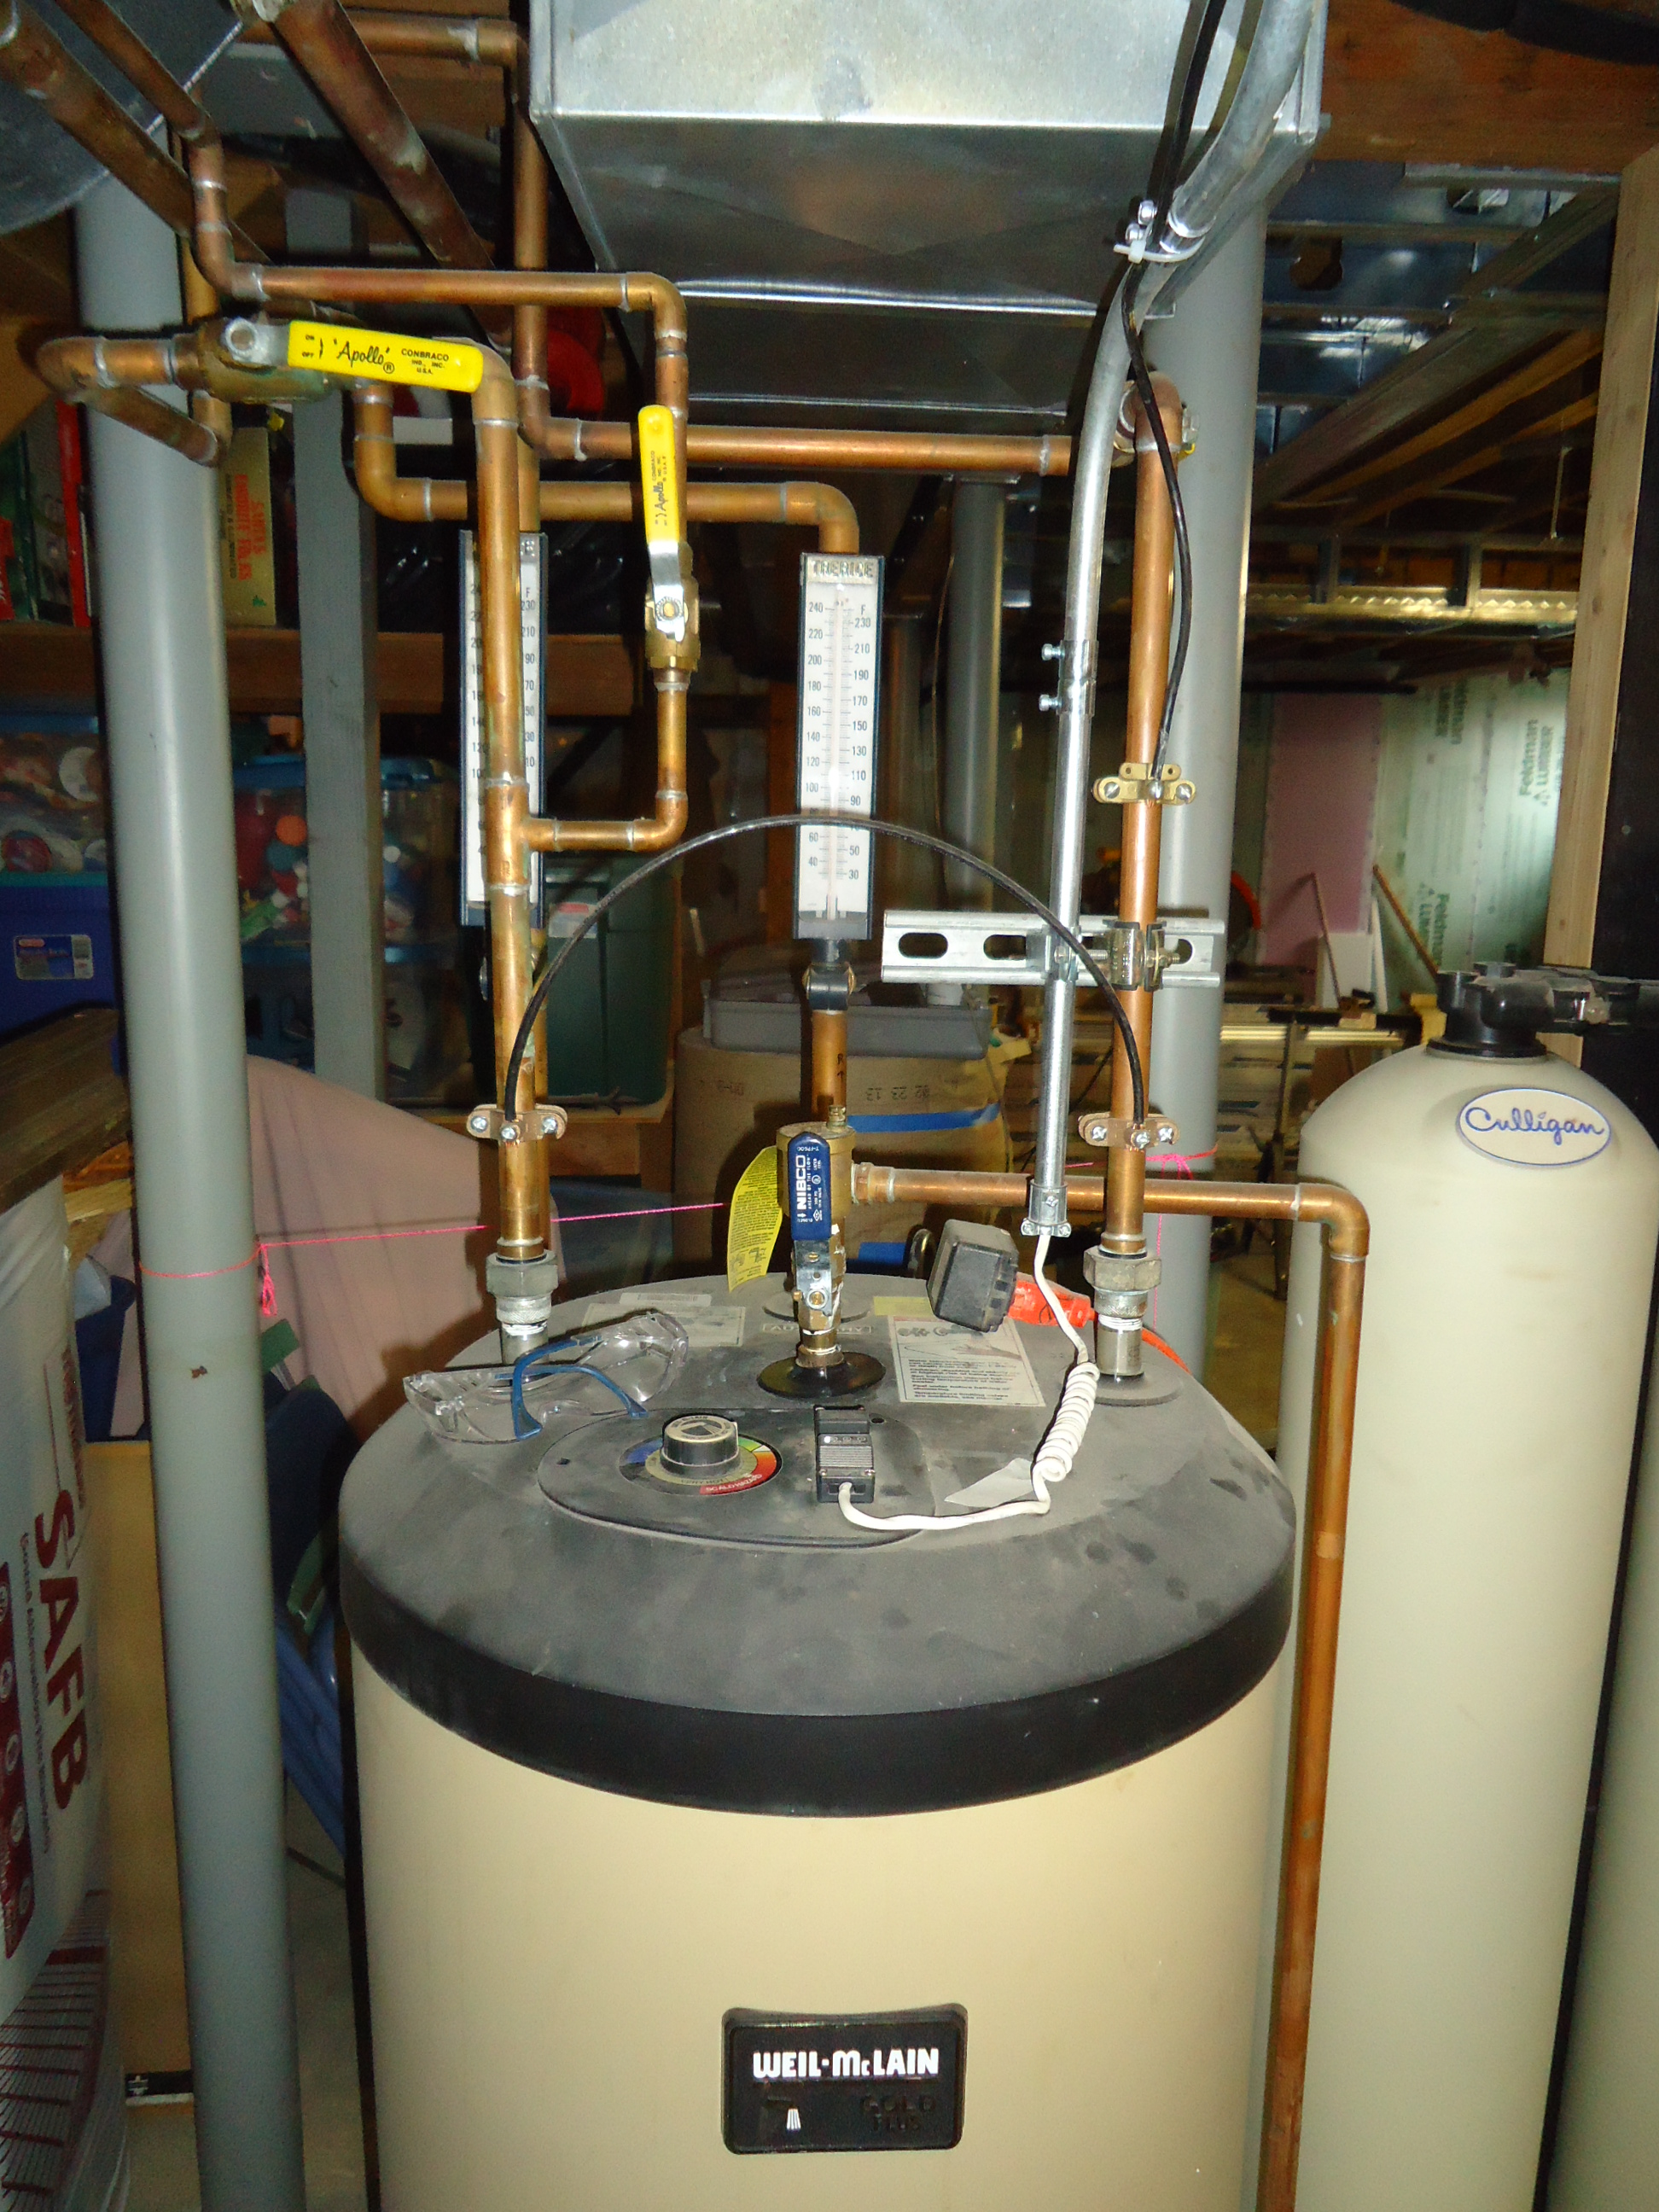 Weil Mclain Indirect Hot Water Heater Short Cycling